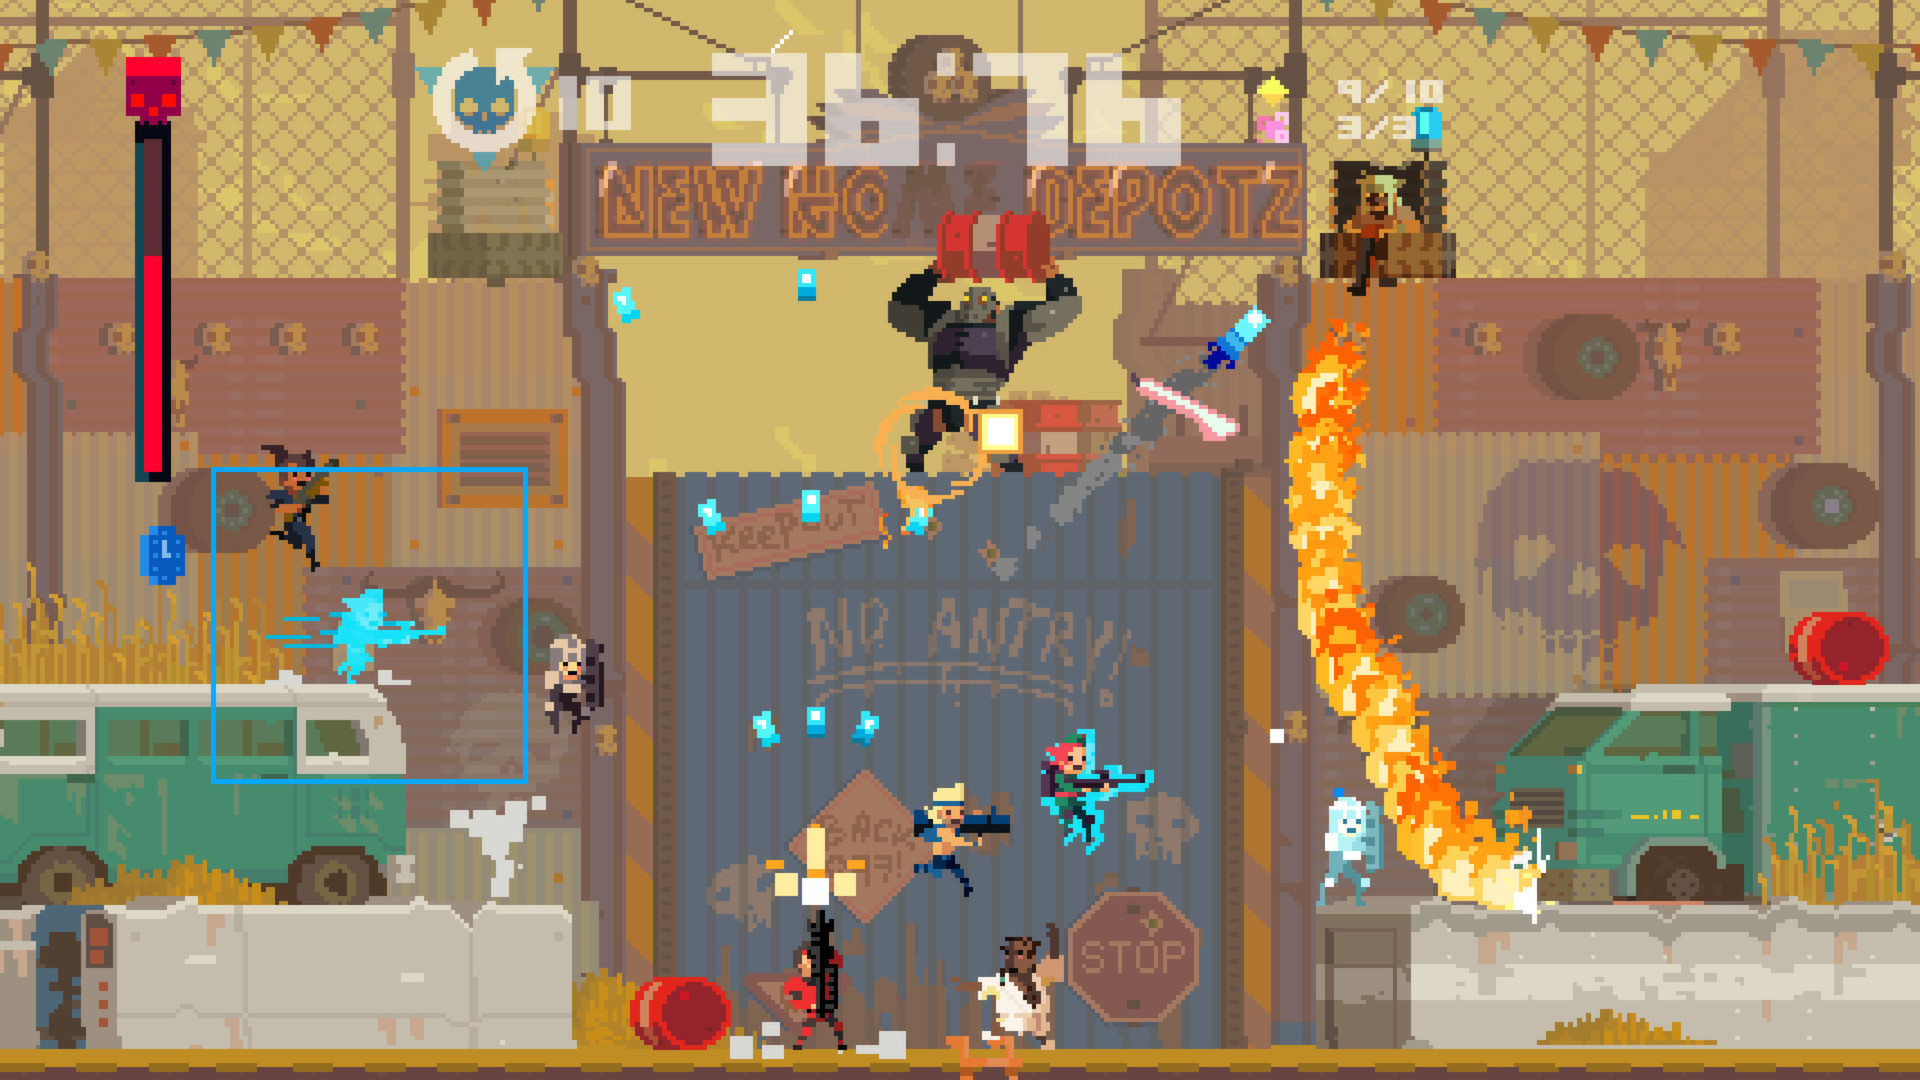 Super Time Force Features